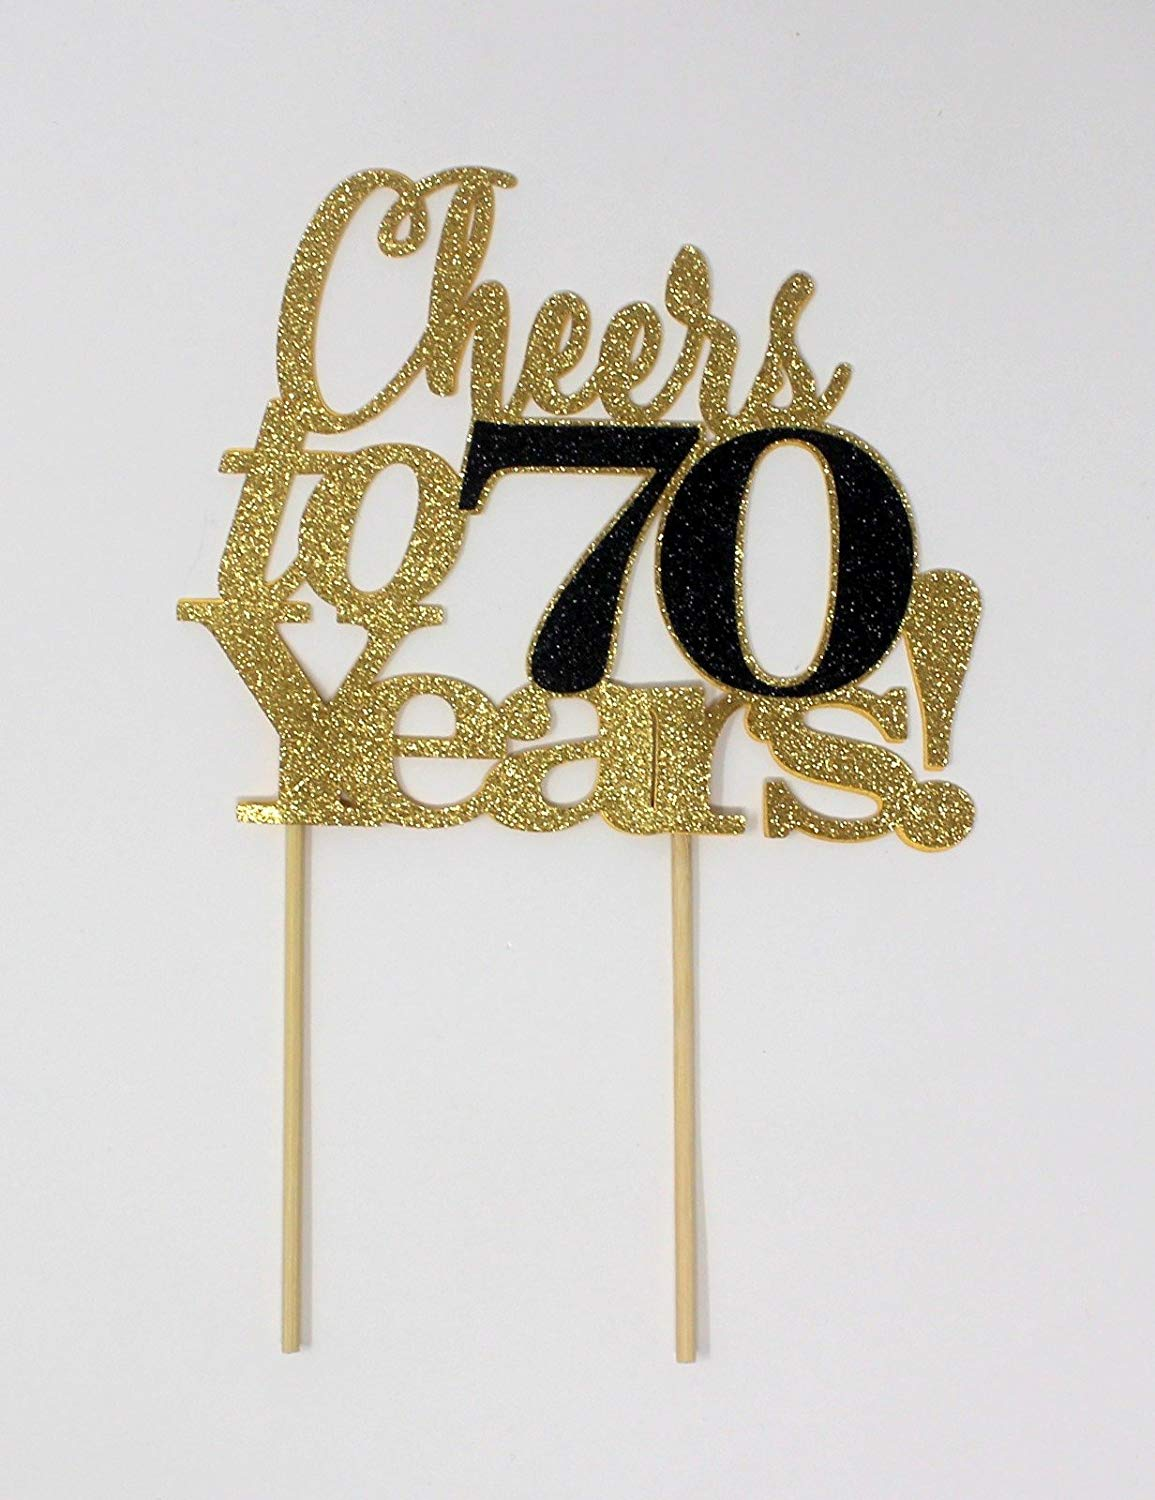 All About Details Cheers to 70 Years! Cake Topper,1pc, 70th Birthday, Anniversary, Party Decor, Glitter Topper (Gold & Black)